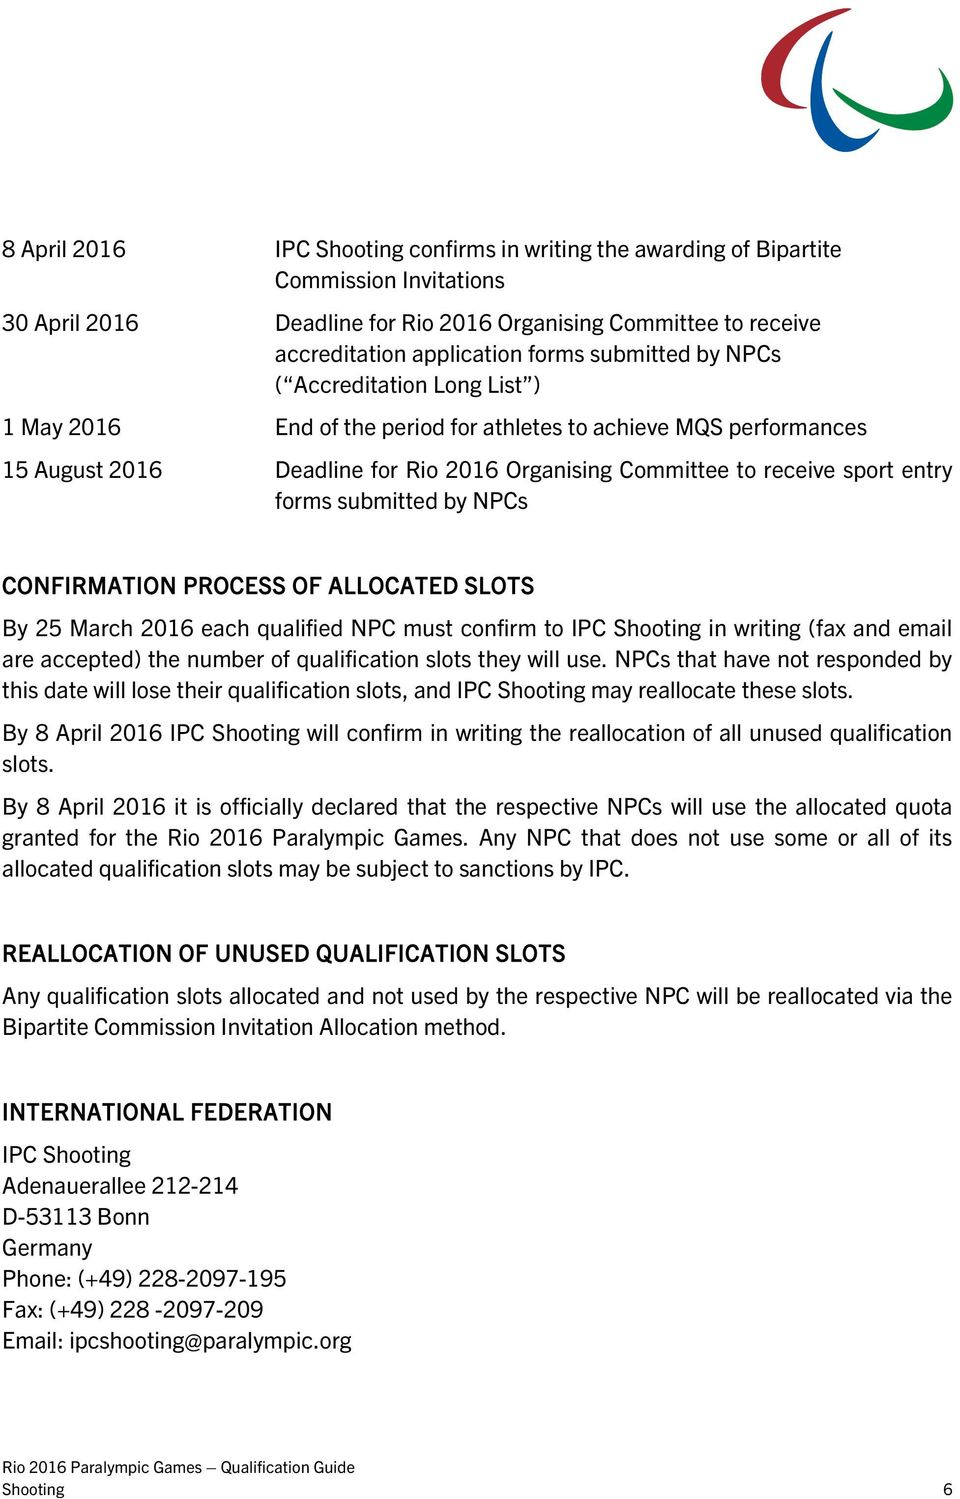 submitted by NPCs CONFIRMATION PROCESS OF ALLOCATED SLOTS By 25 March 2016 each qualified NPC must confirm to IPC Shooting in writing (fax and email are accepted) the number of qualification slots